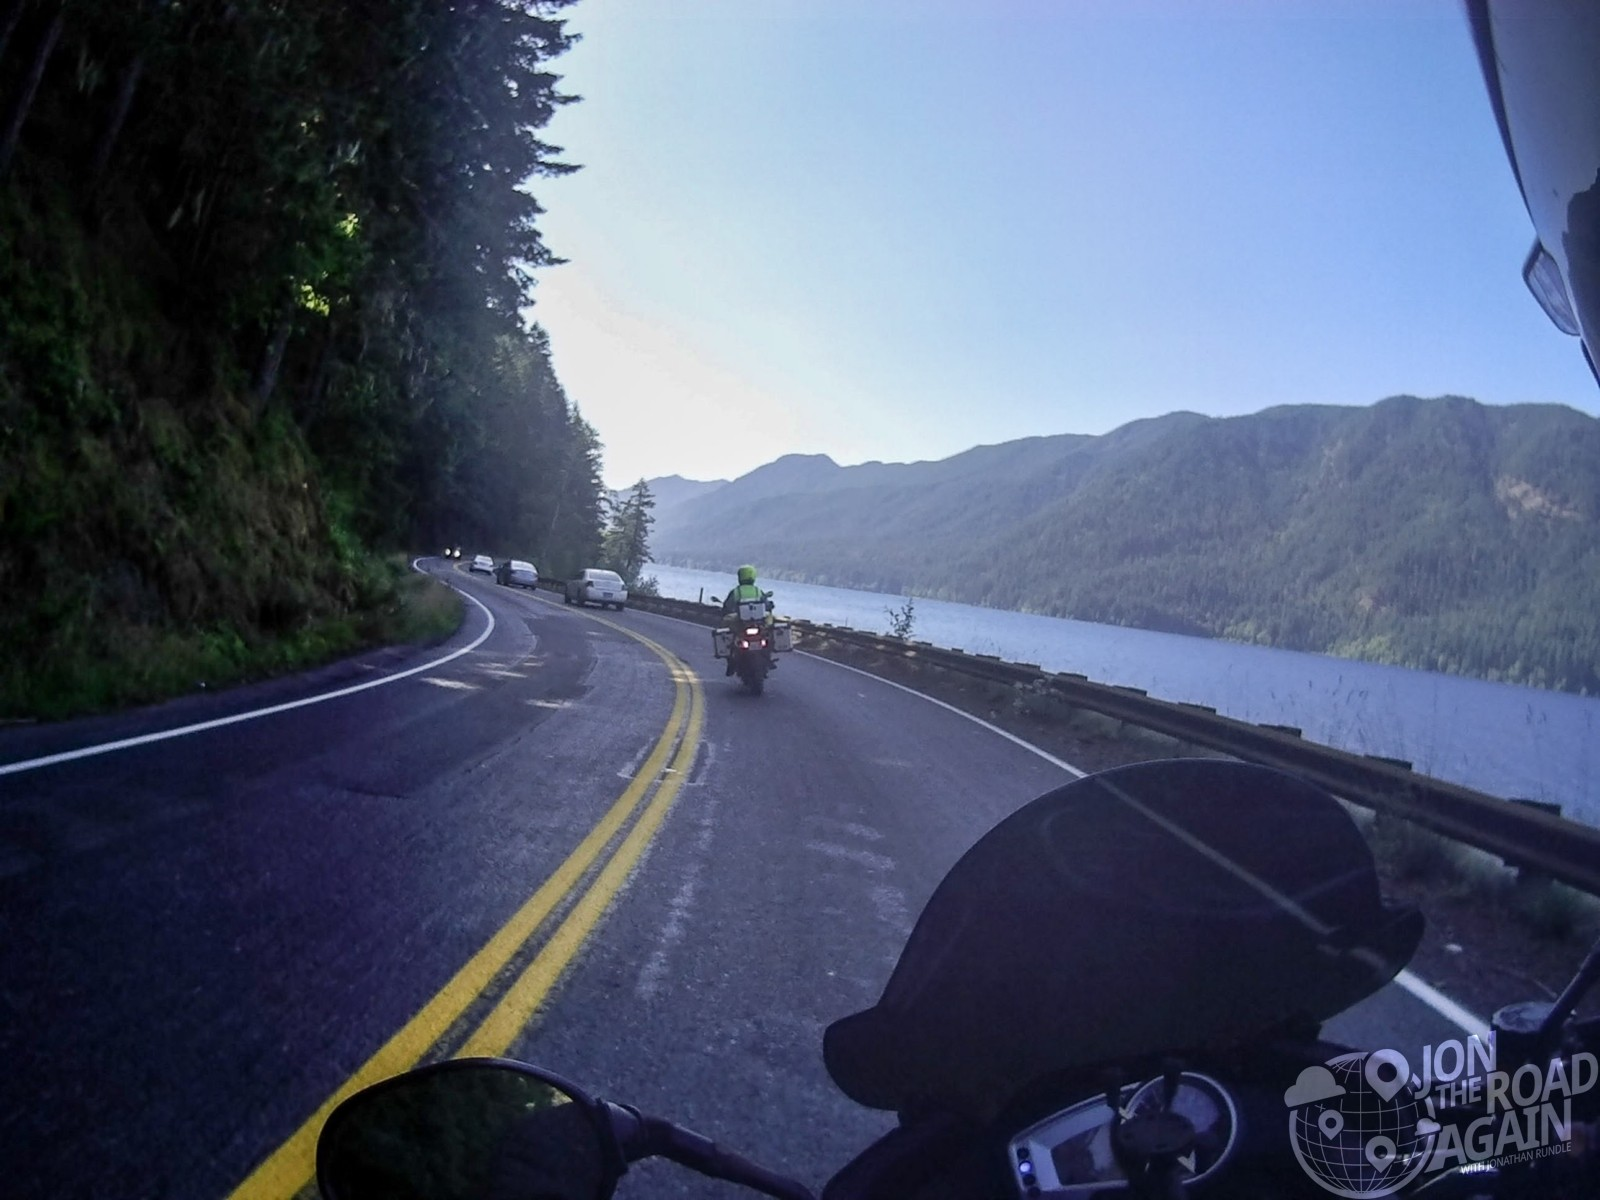 Lake Crescent by motorcycle